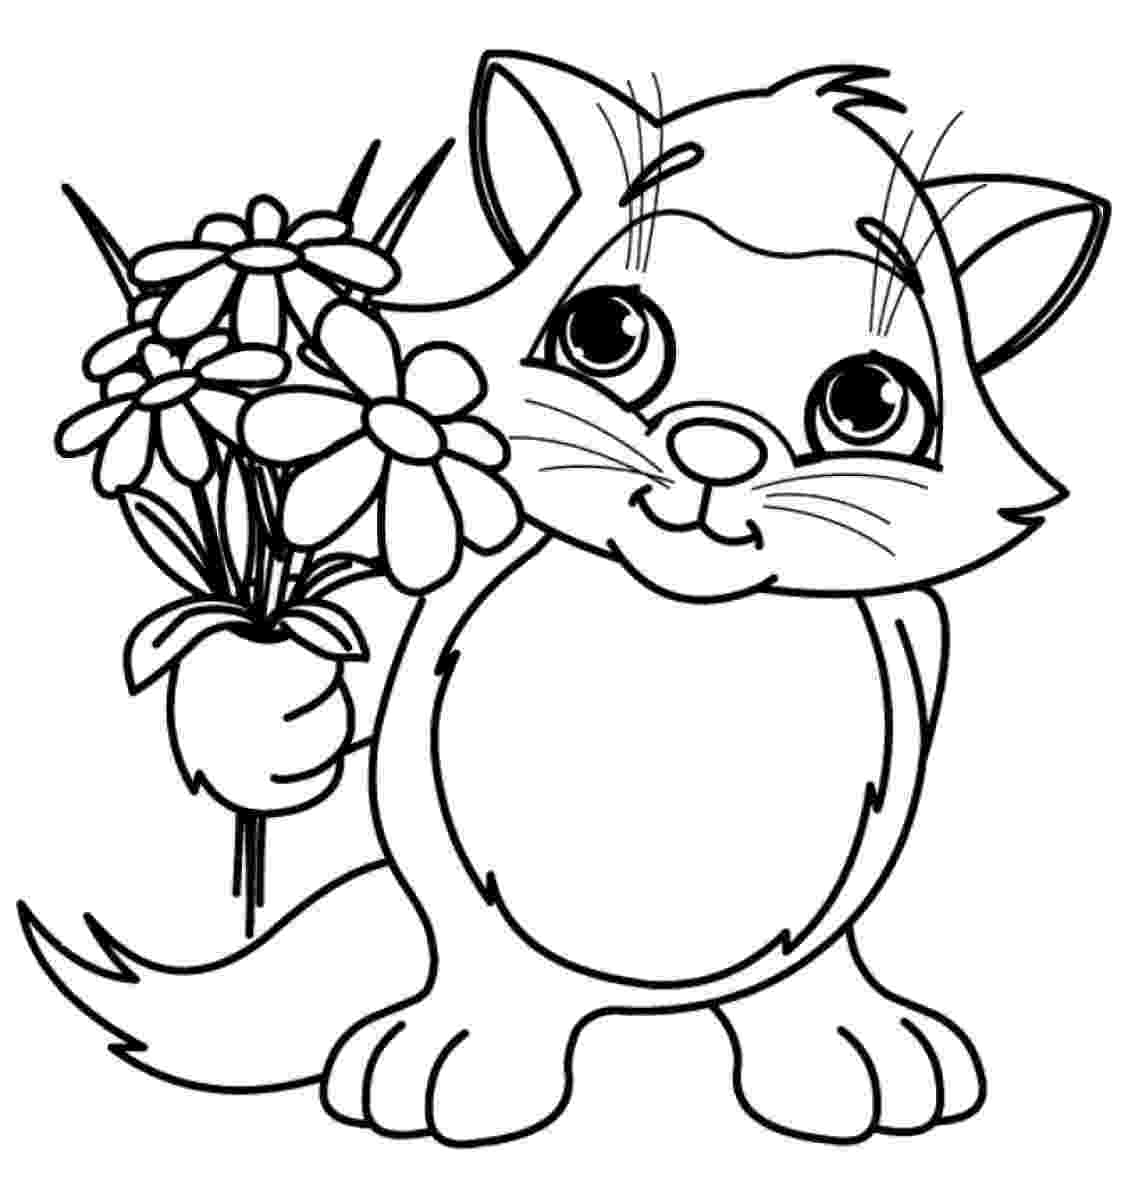 colouring pages for flowers flowers to colour flowers colouring for pages